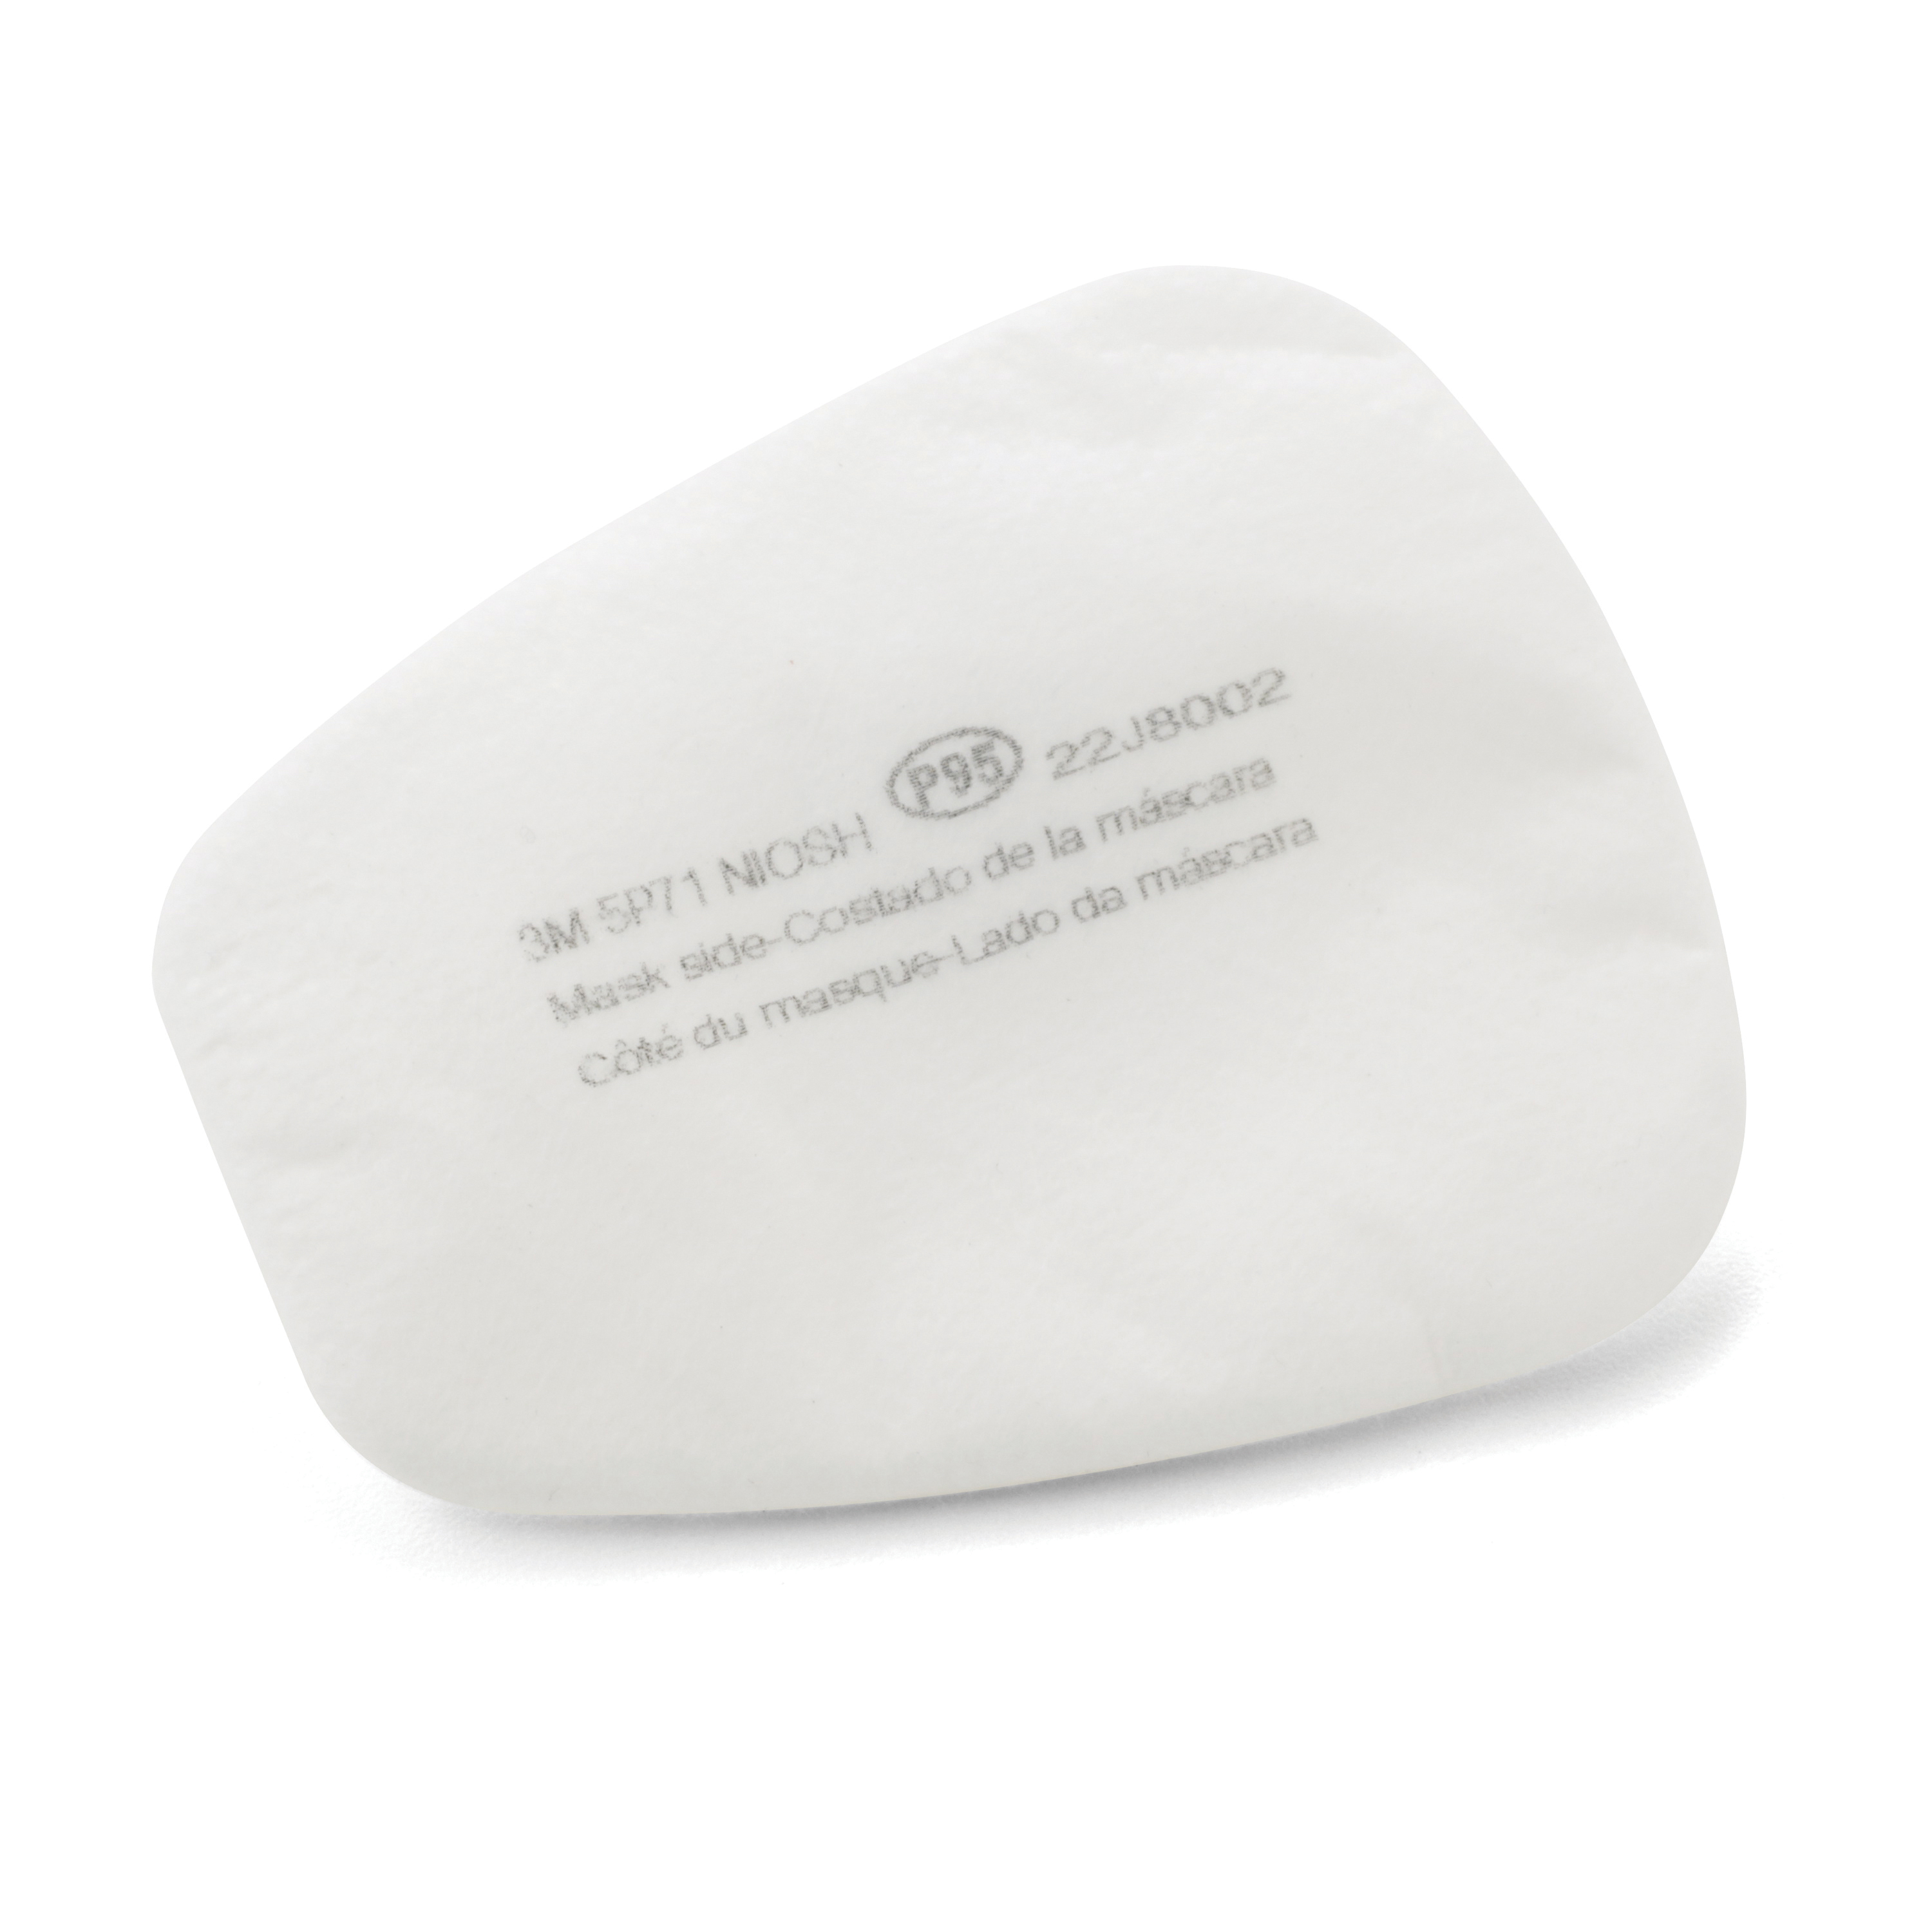 3M™ 051138-66278 Replacement Particulate Filter, For Use With 3M™ 5000 Series Reusable Respirators, 6000 Series Cartridges, 603 Filter Adapter and 501 Filter Retainers, P95